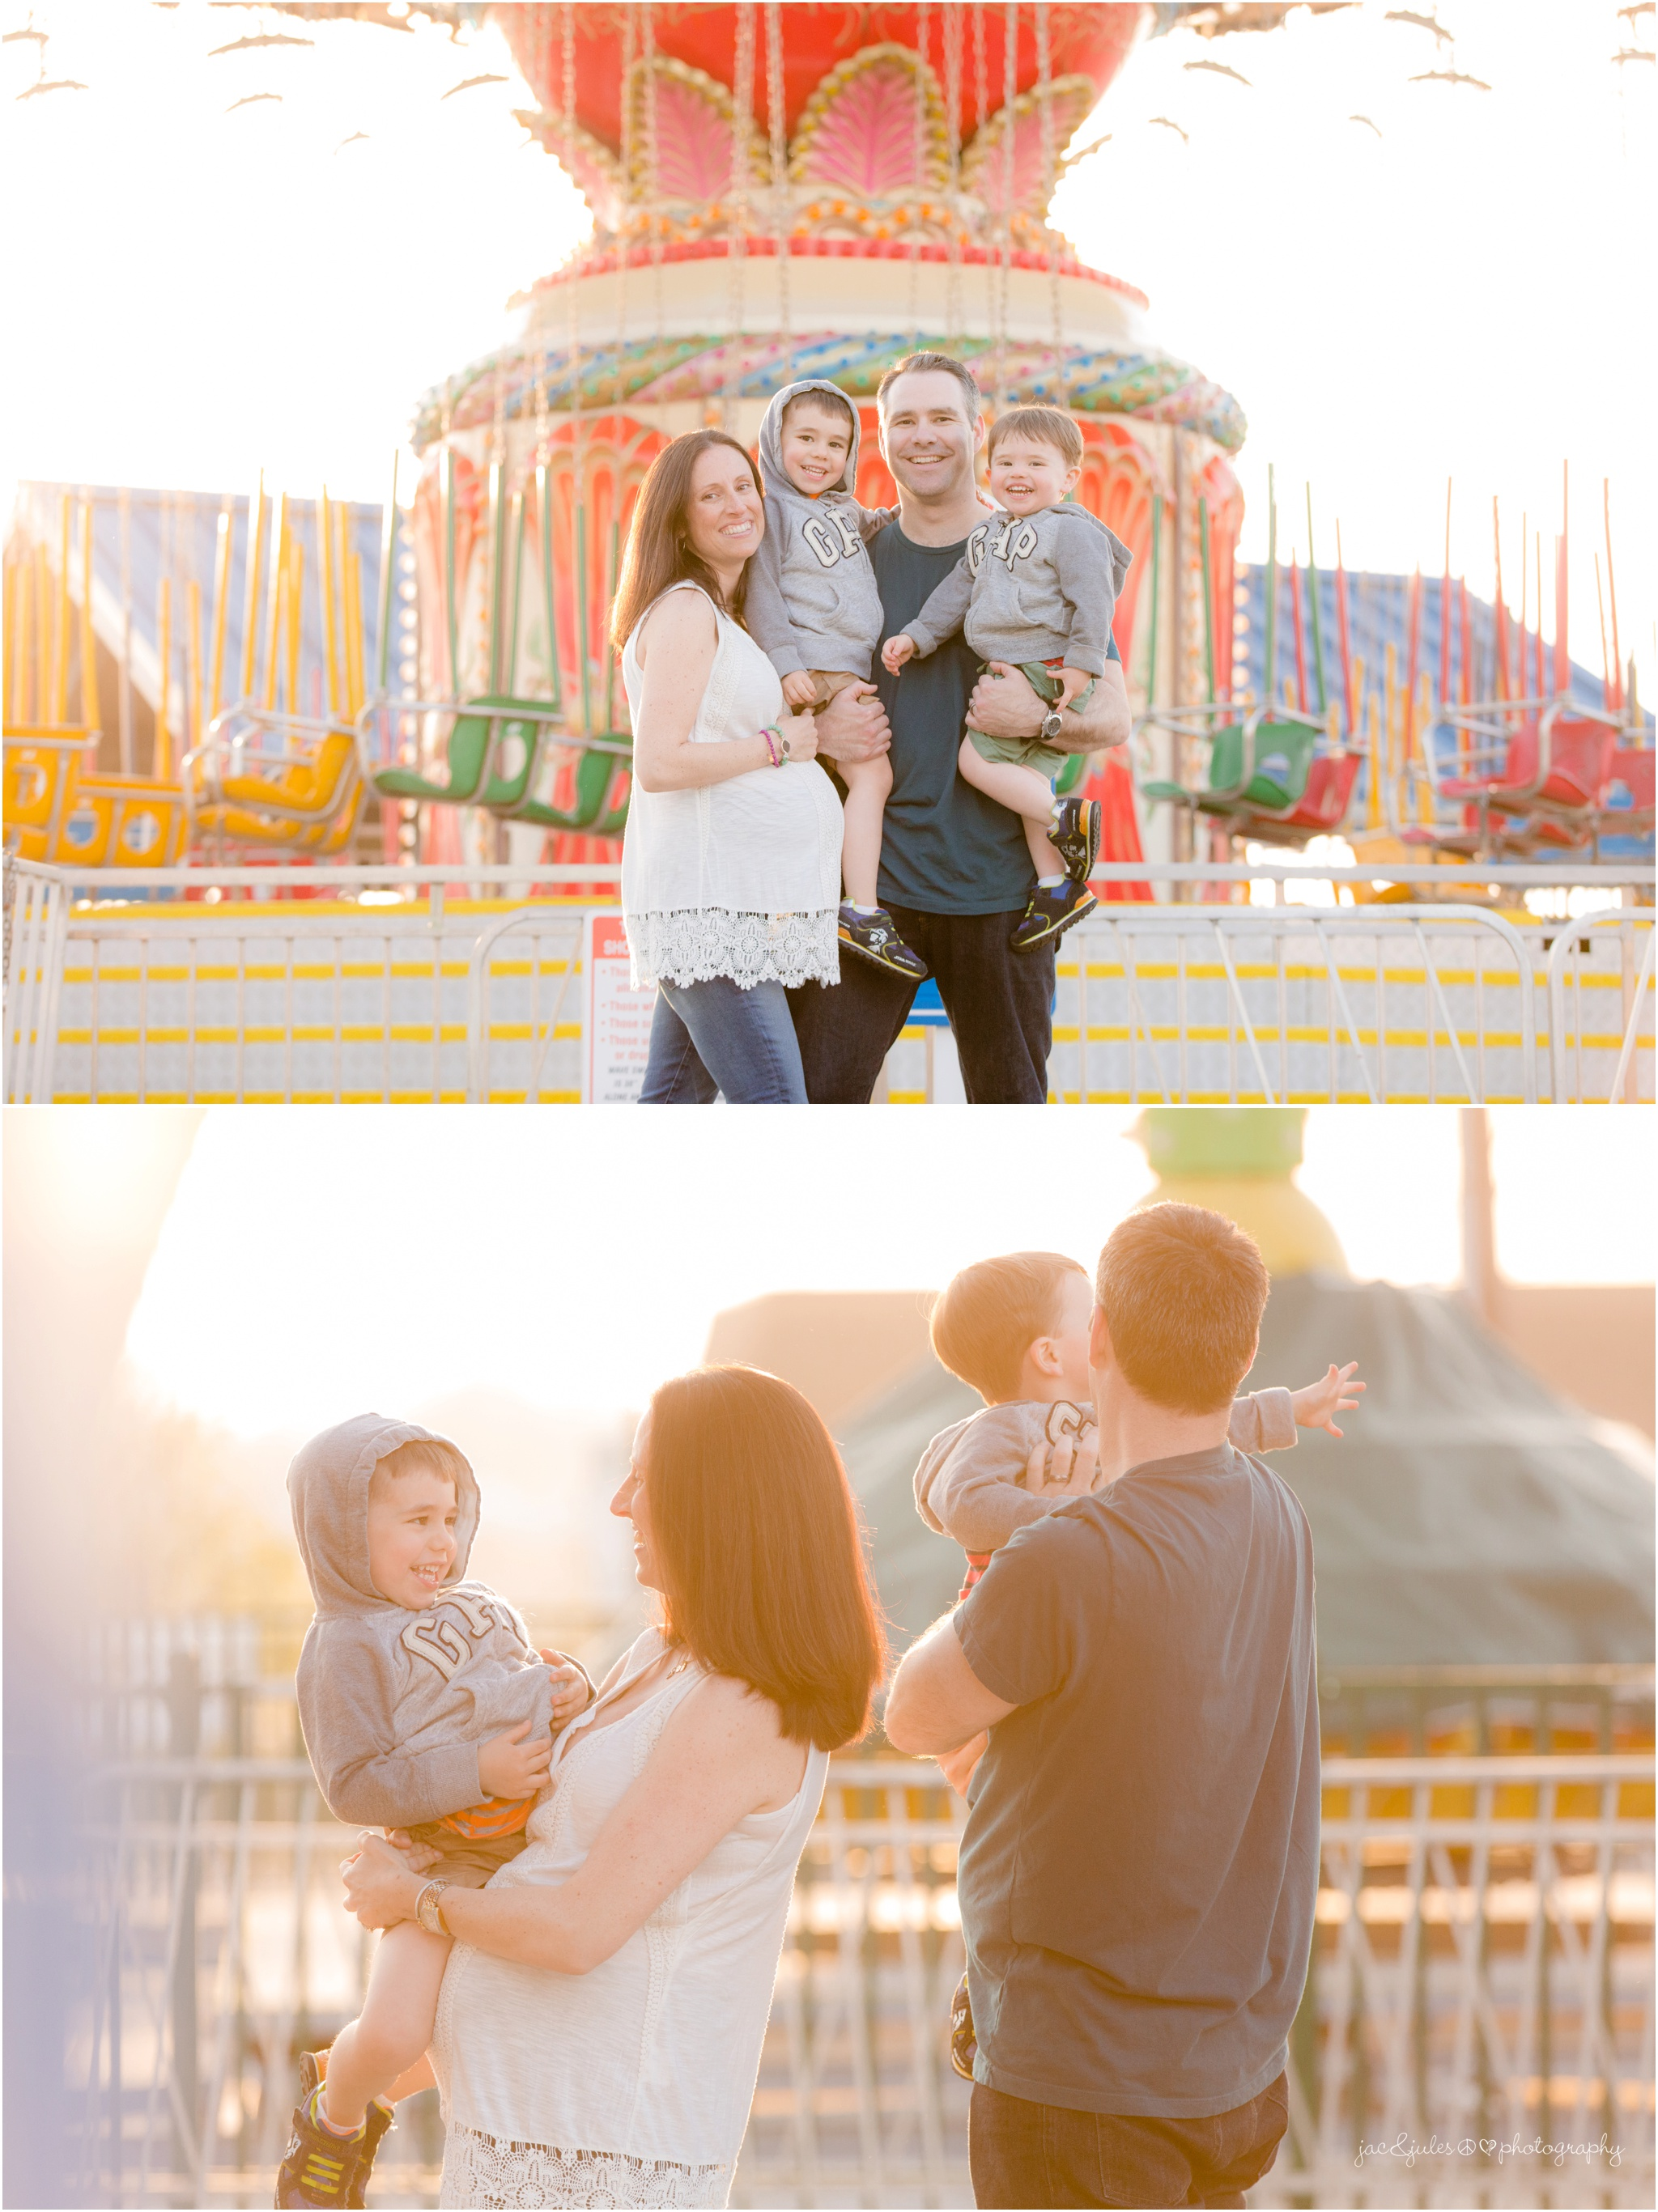 maternity photos with amusement park rides at point pleasant boardwalk